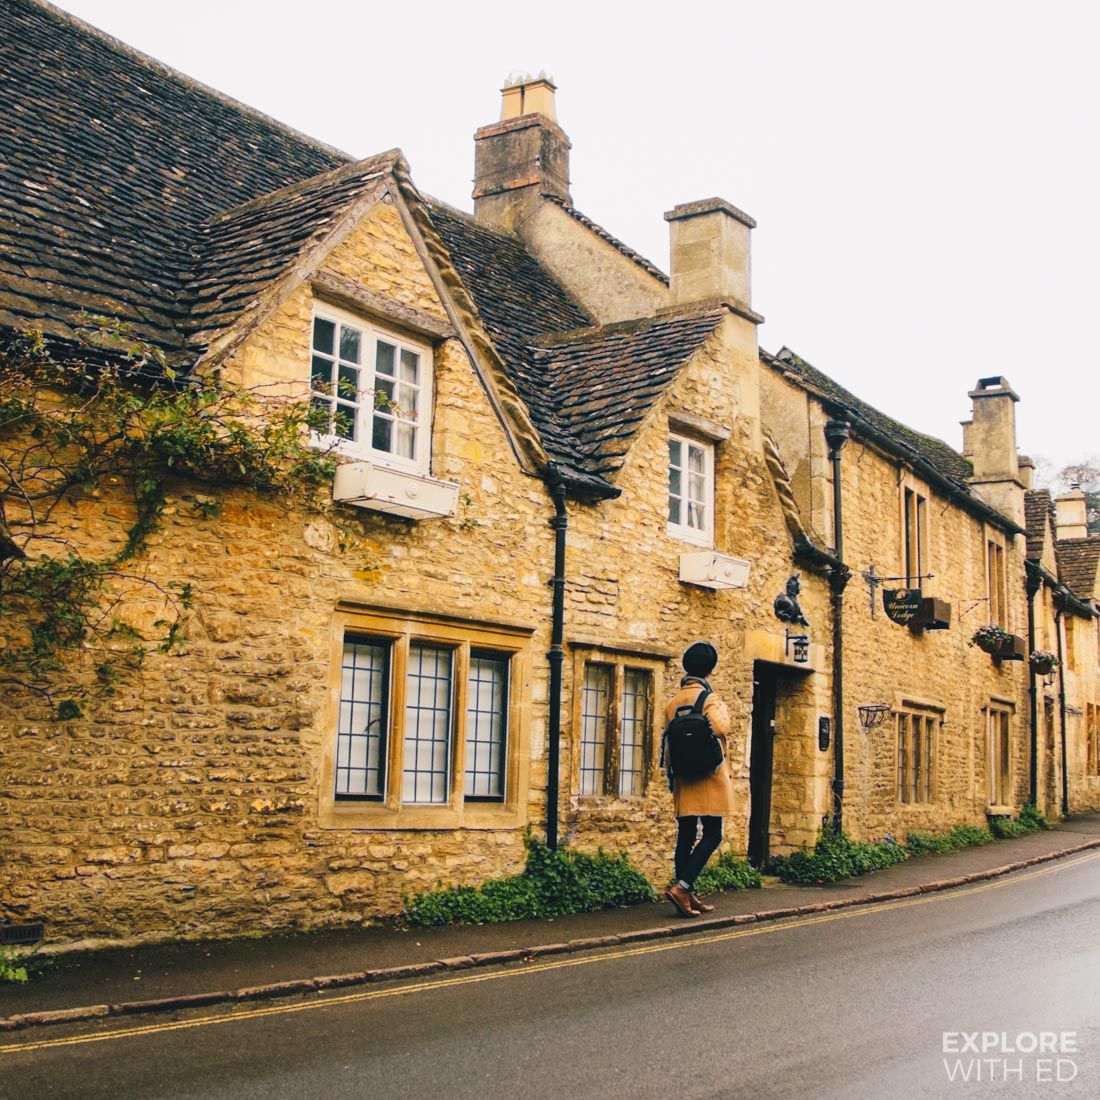 Places to stay in Castle Combe